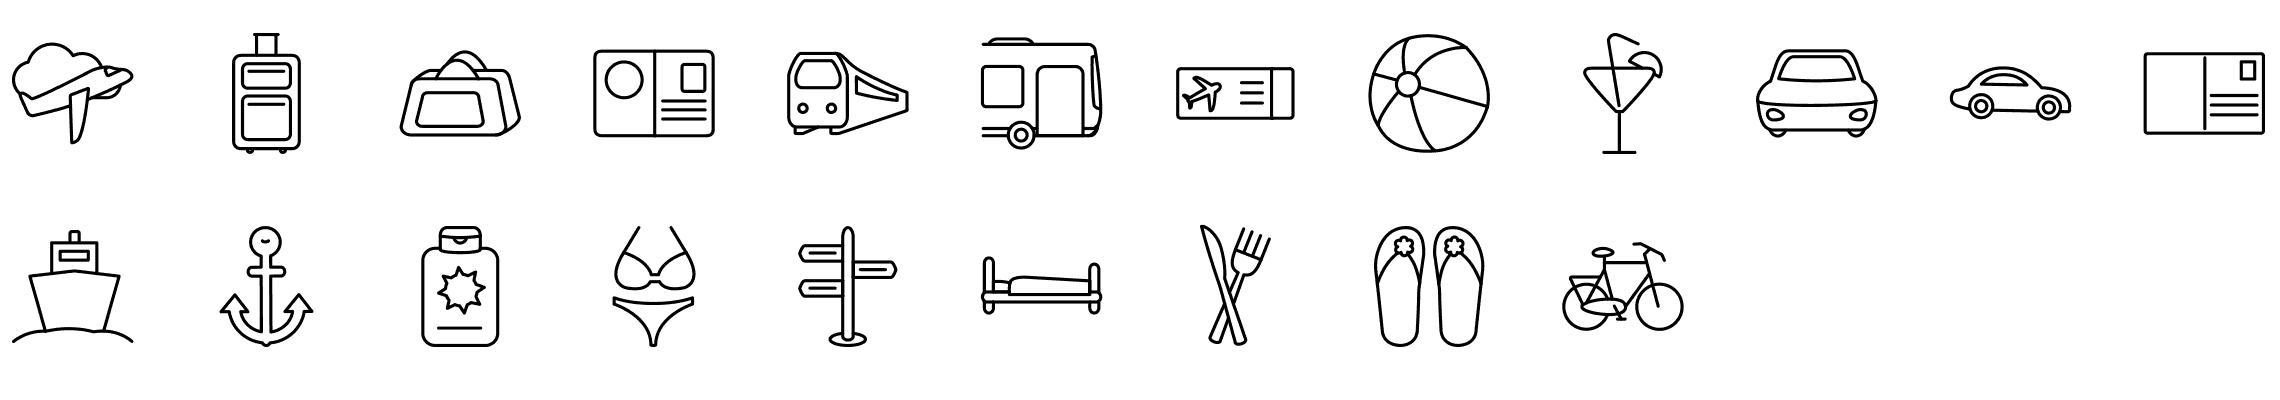 travel-and-transportation-line-icons-preview